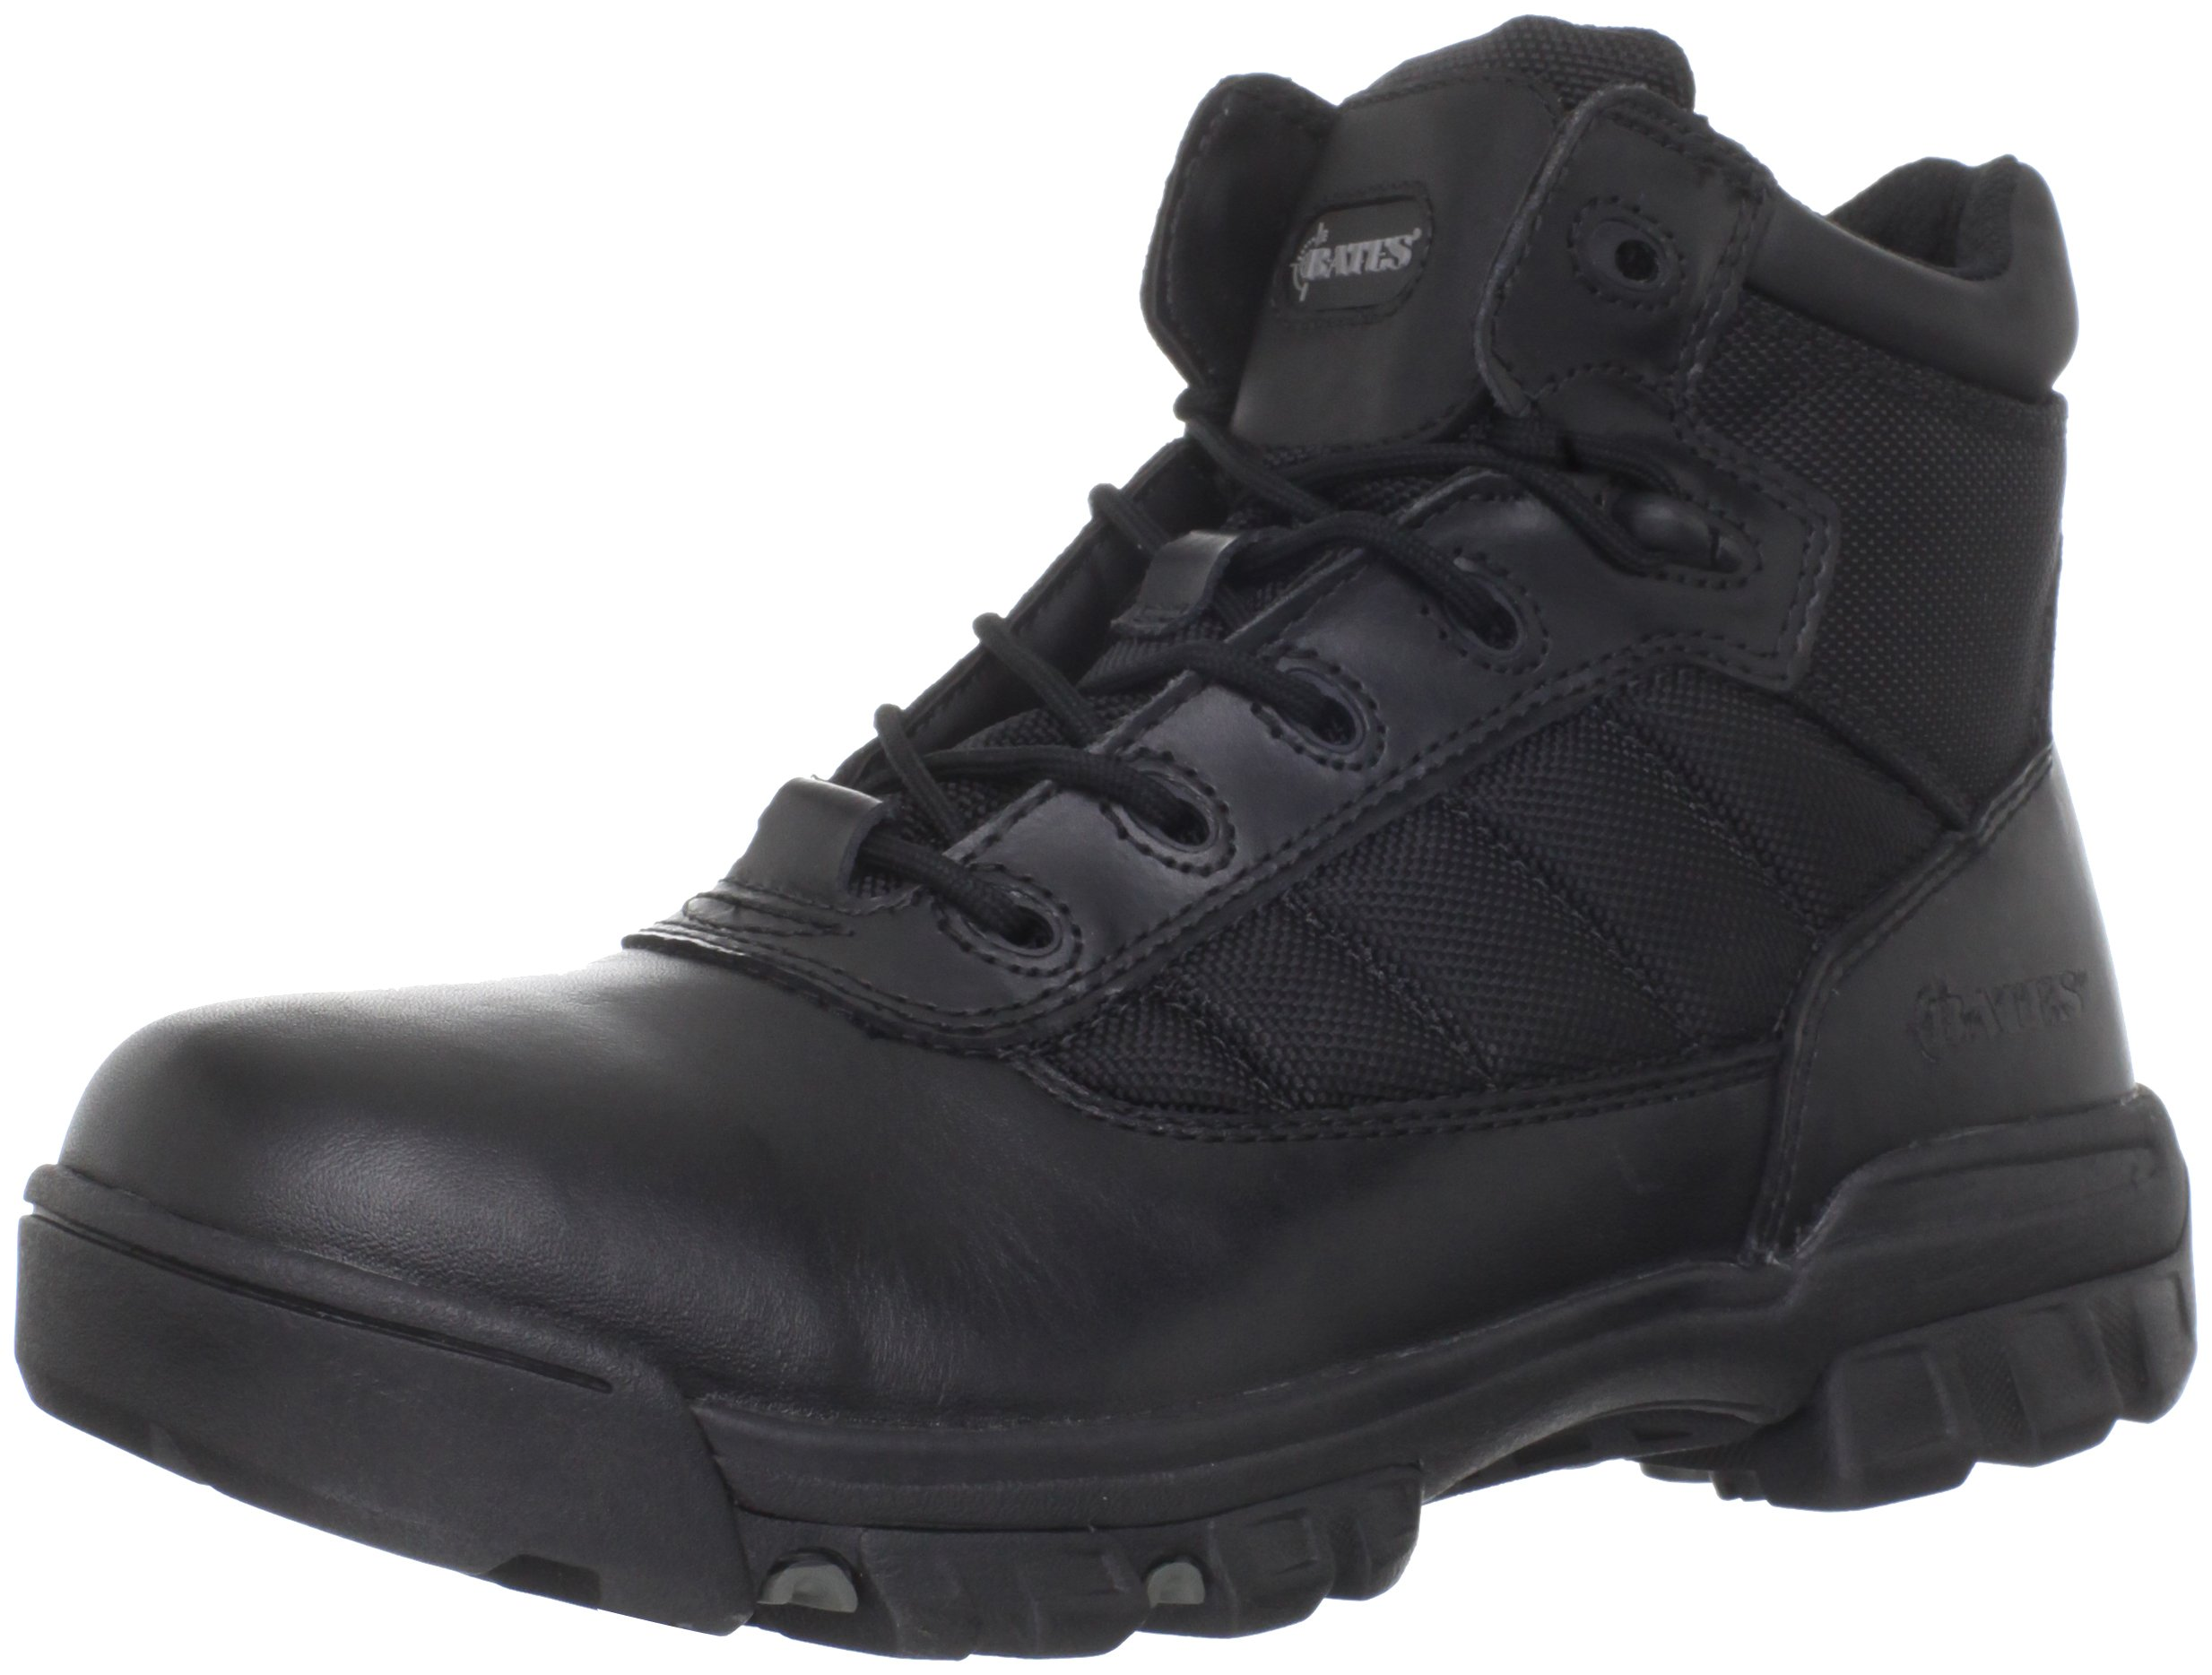 Bates Men's Enforcer 5 Inch Nylon Leather Uniform Boot, Black, 10.5 XW US by Bates